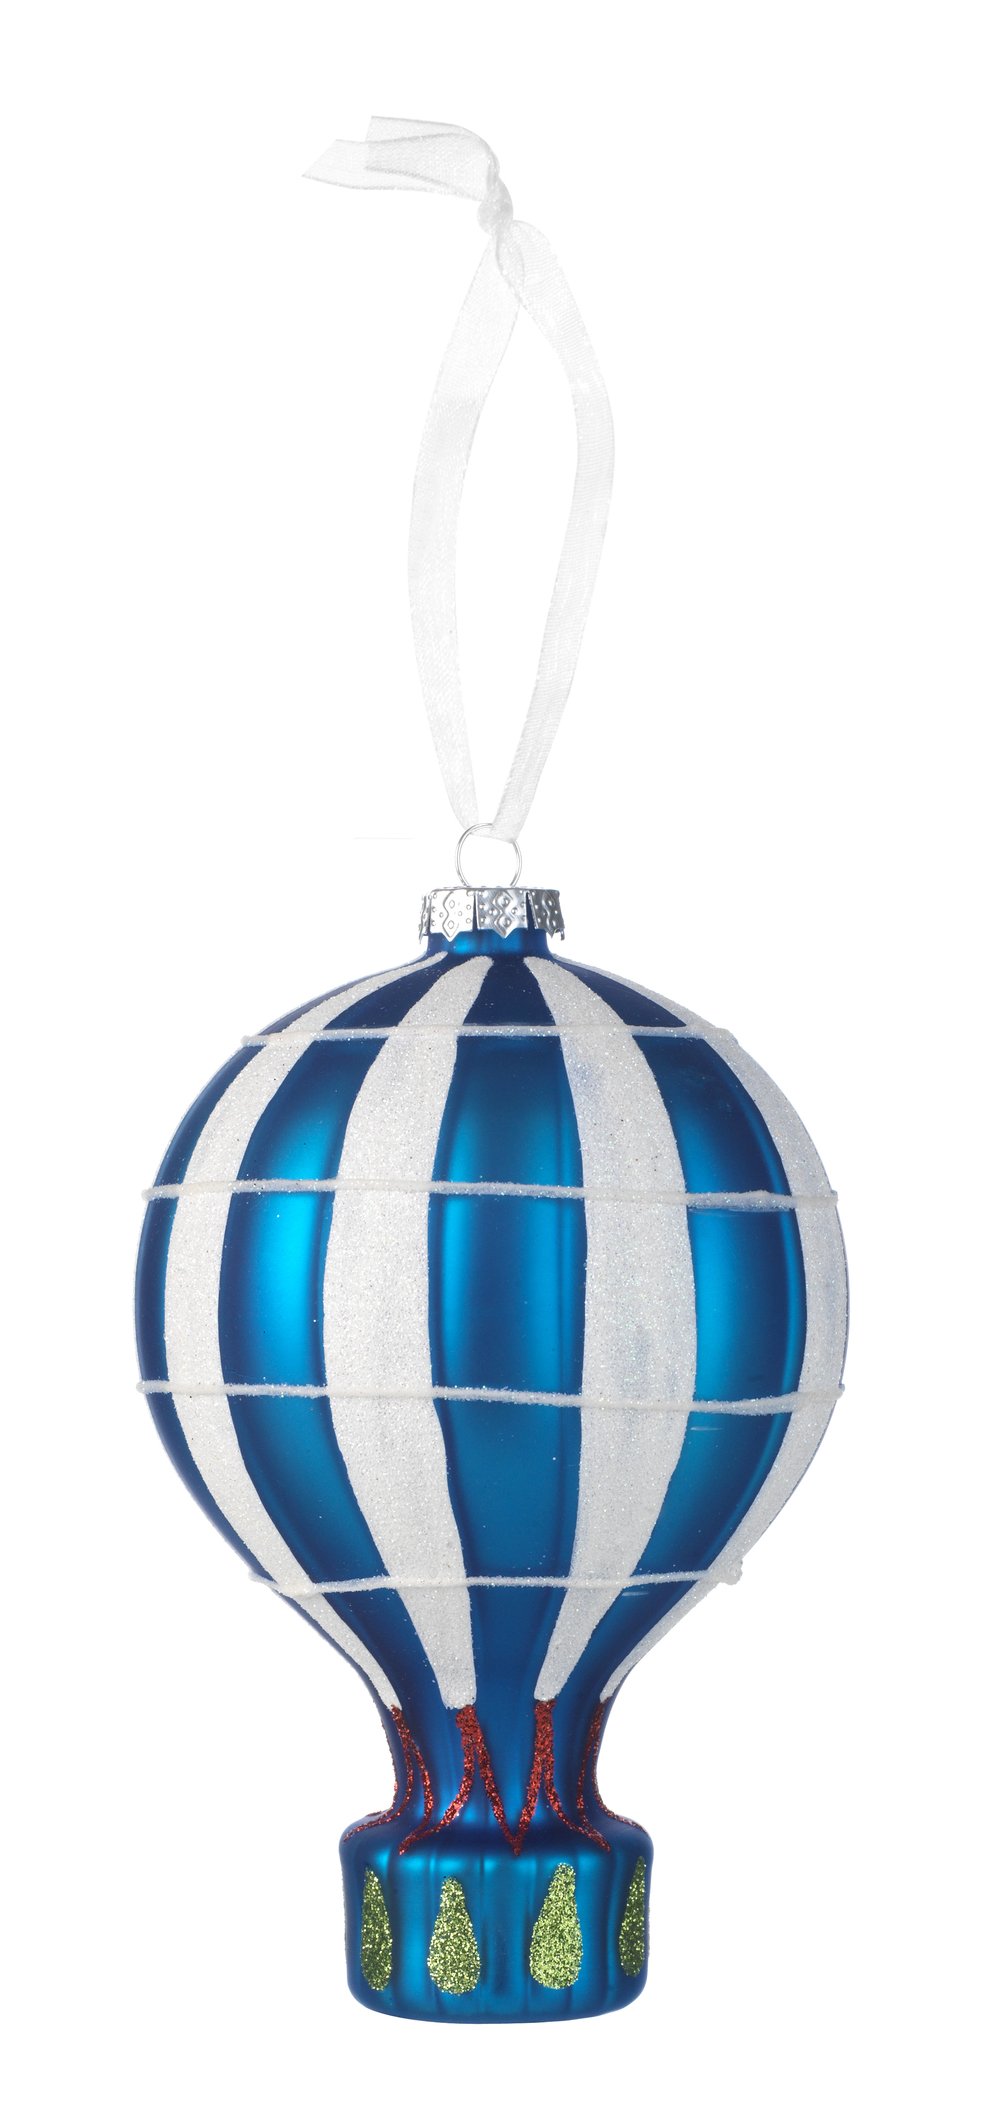 Kurt Adler hot air balloon ornament £9.95.jpg